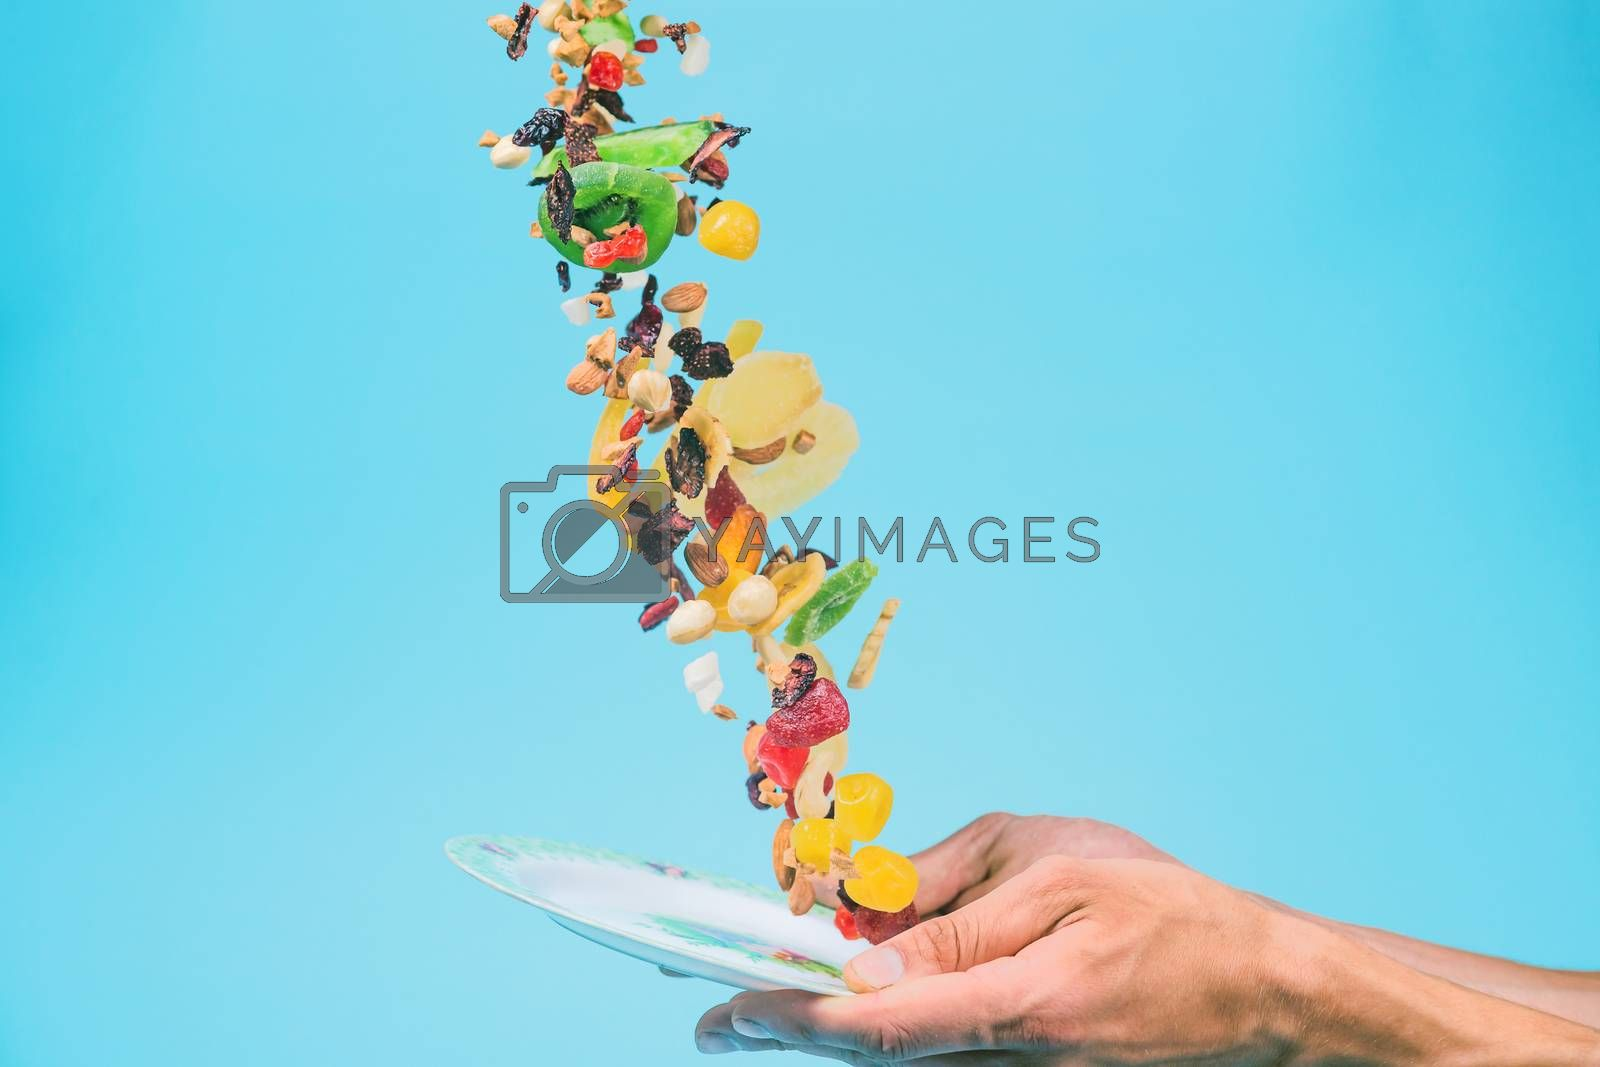 Male hands holding an empty white bowl on blue background. Candied fruits and nuts flying above the bowl. Stock photo of nutrient and healty food. Conceptual photo of vegan and vegetarial food and meal.